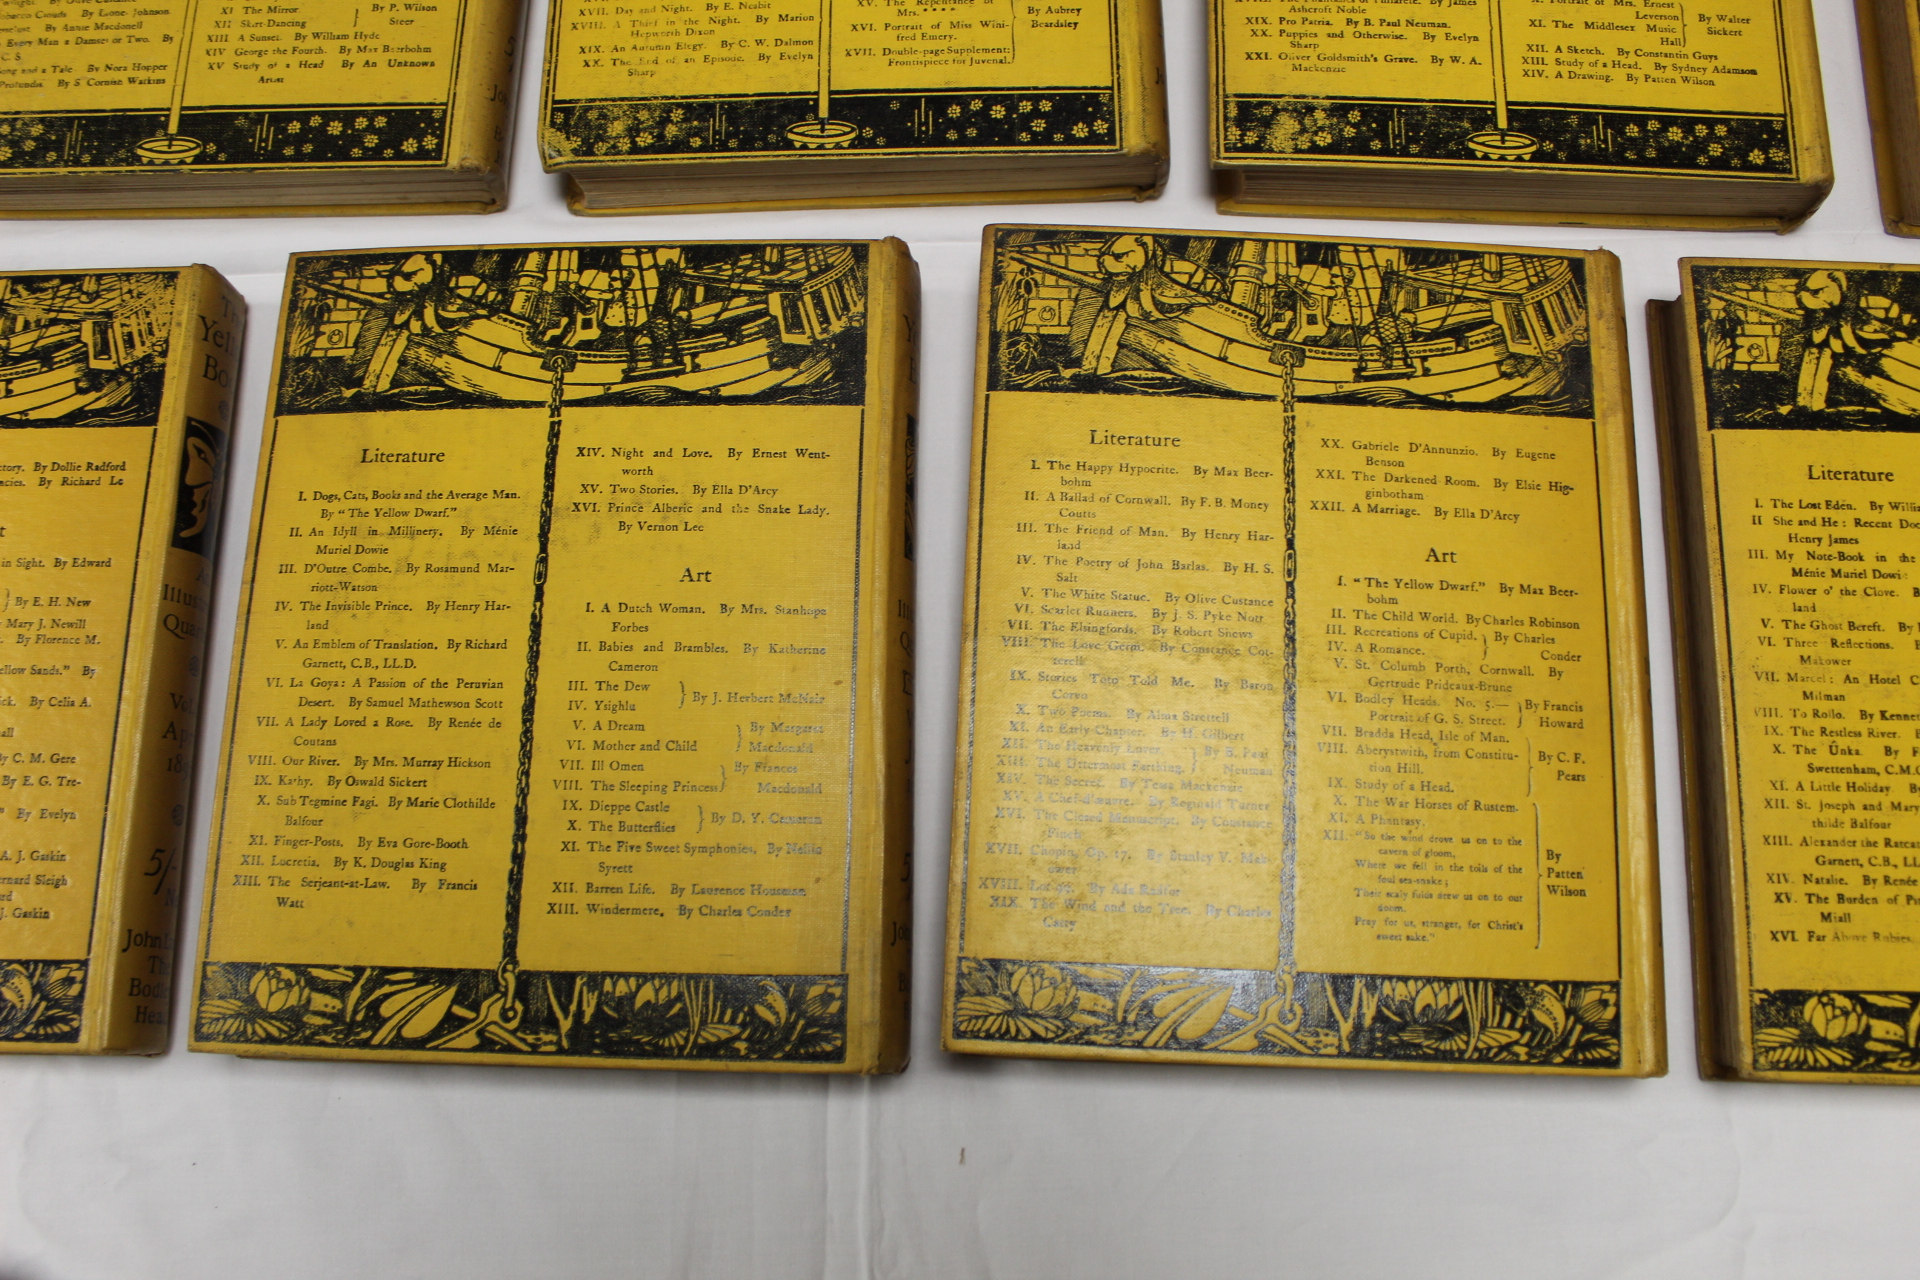 THE YELLOW BOOK.An Illustrated Quarterly. A set of 13 vols., many fine illus. Small quarto. - Image 41 of 45